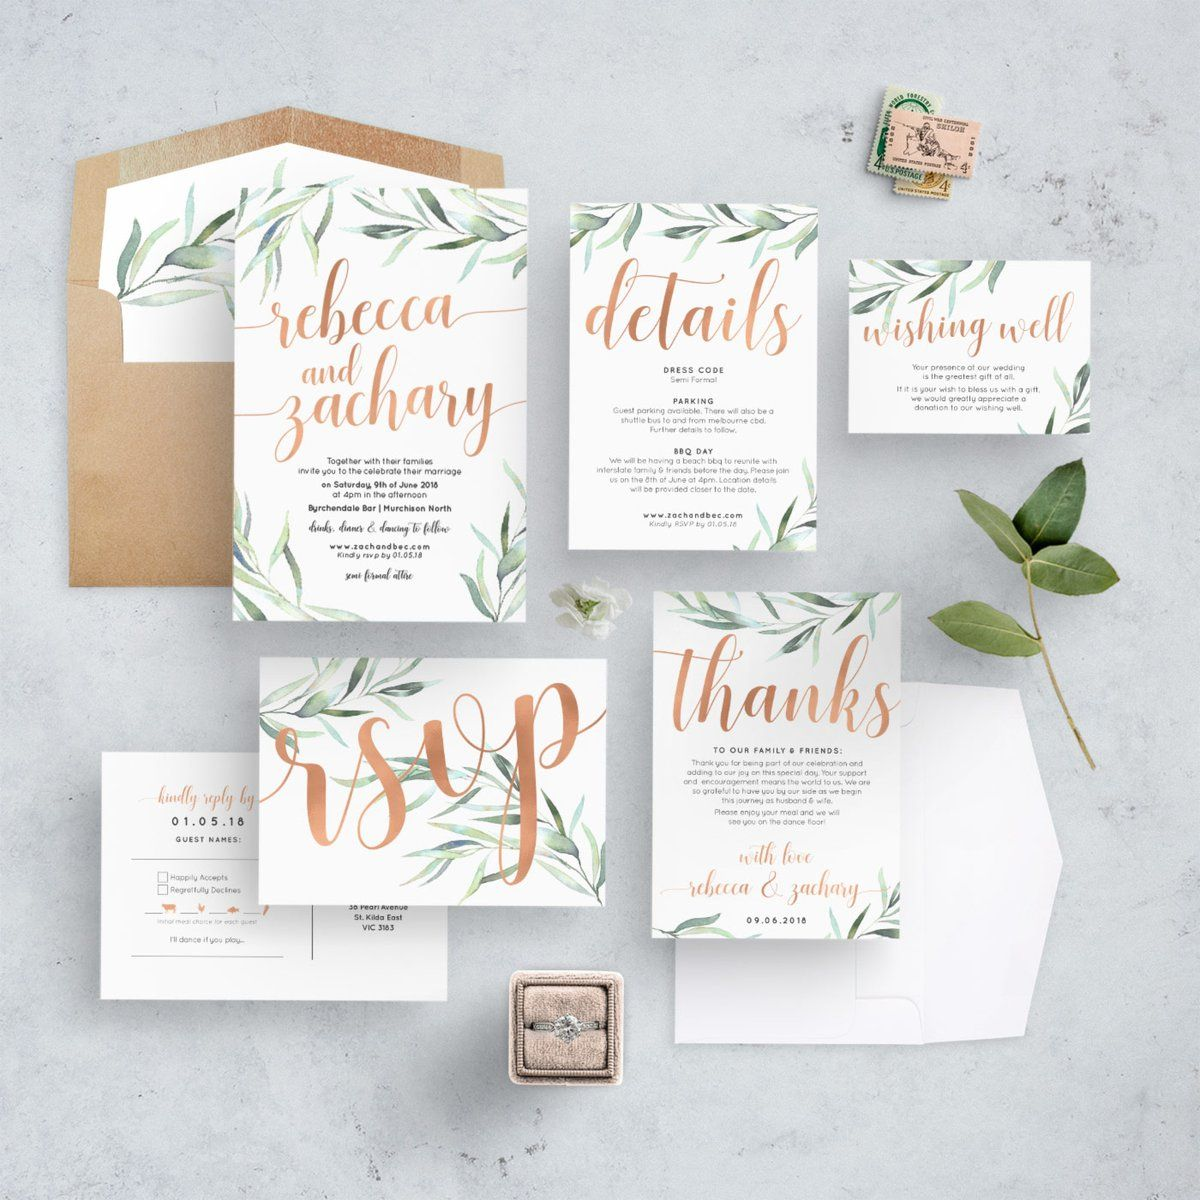 Boho Rustic Eucalyptus Rose Gold Wedding Invitation Suite Rose Gold Wedding Invitations Eucalyptus Wedding Invitation Wedding Invitations Boho